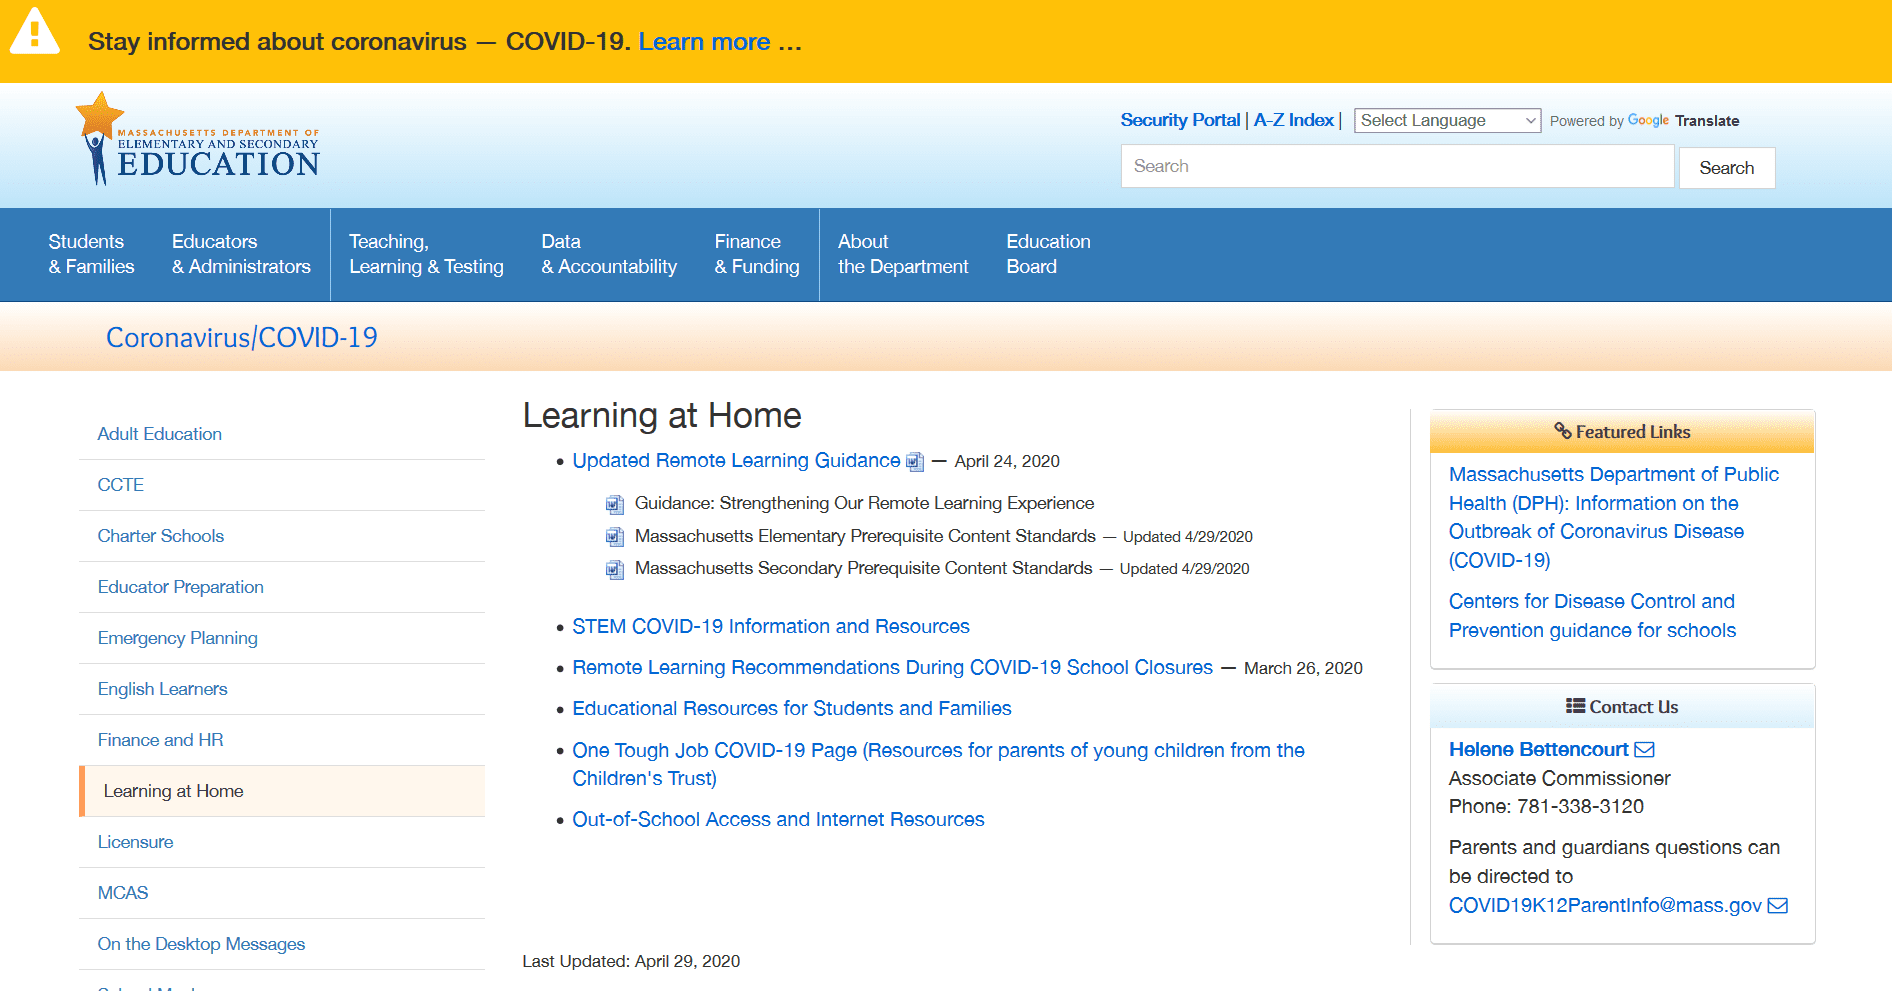 Coronavirus-COVID-19-Learning-at-Home-Massachusetts-Department-of-Elementary-and-Secondary-Education